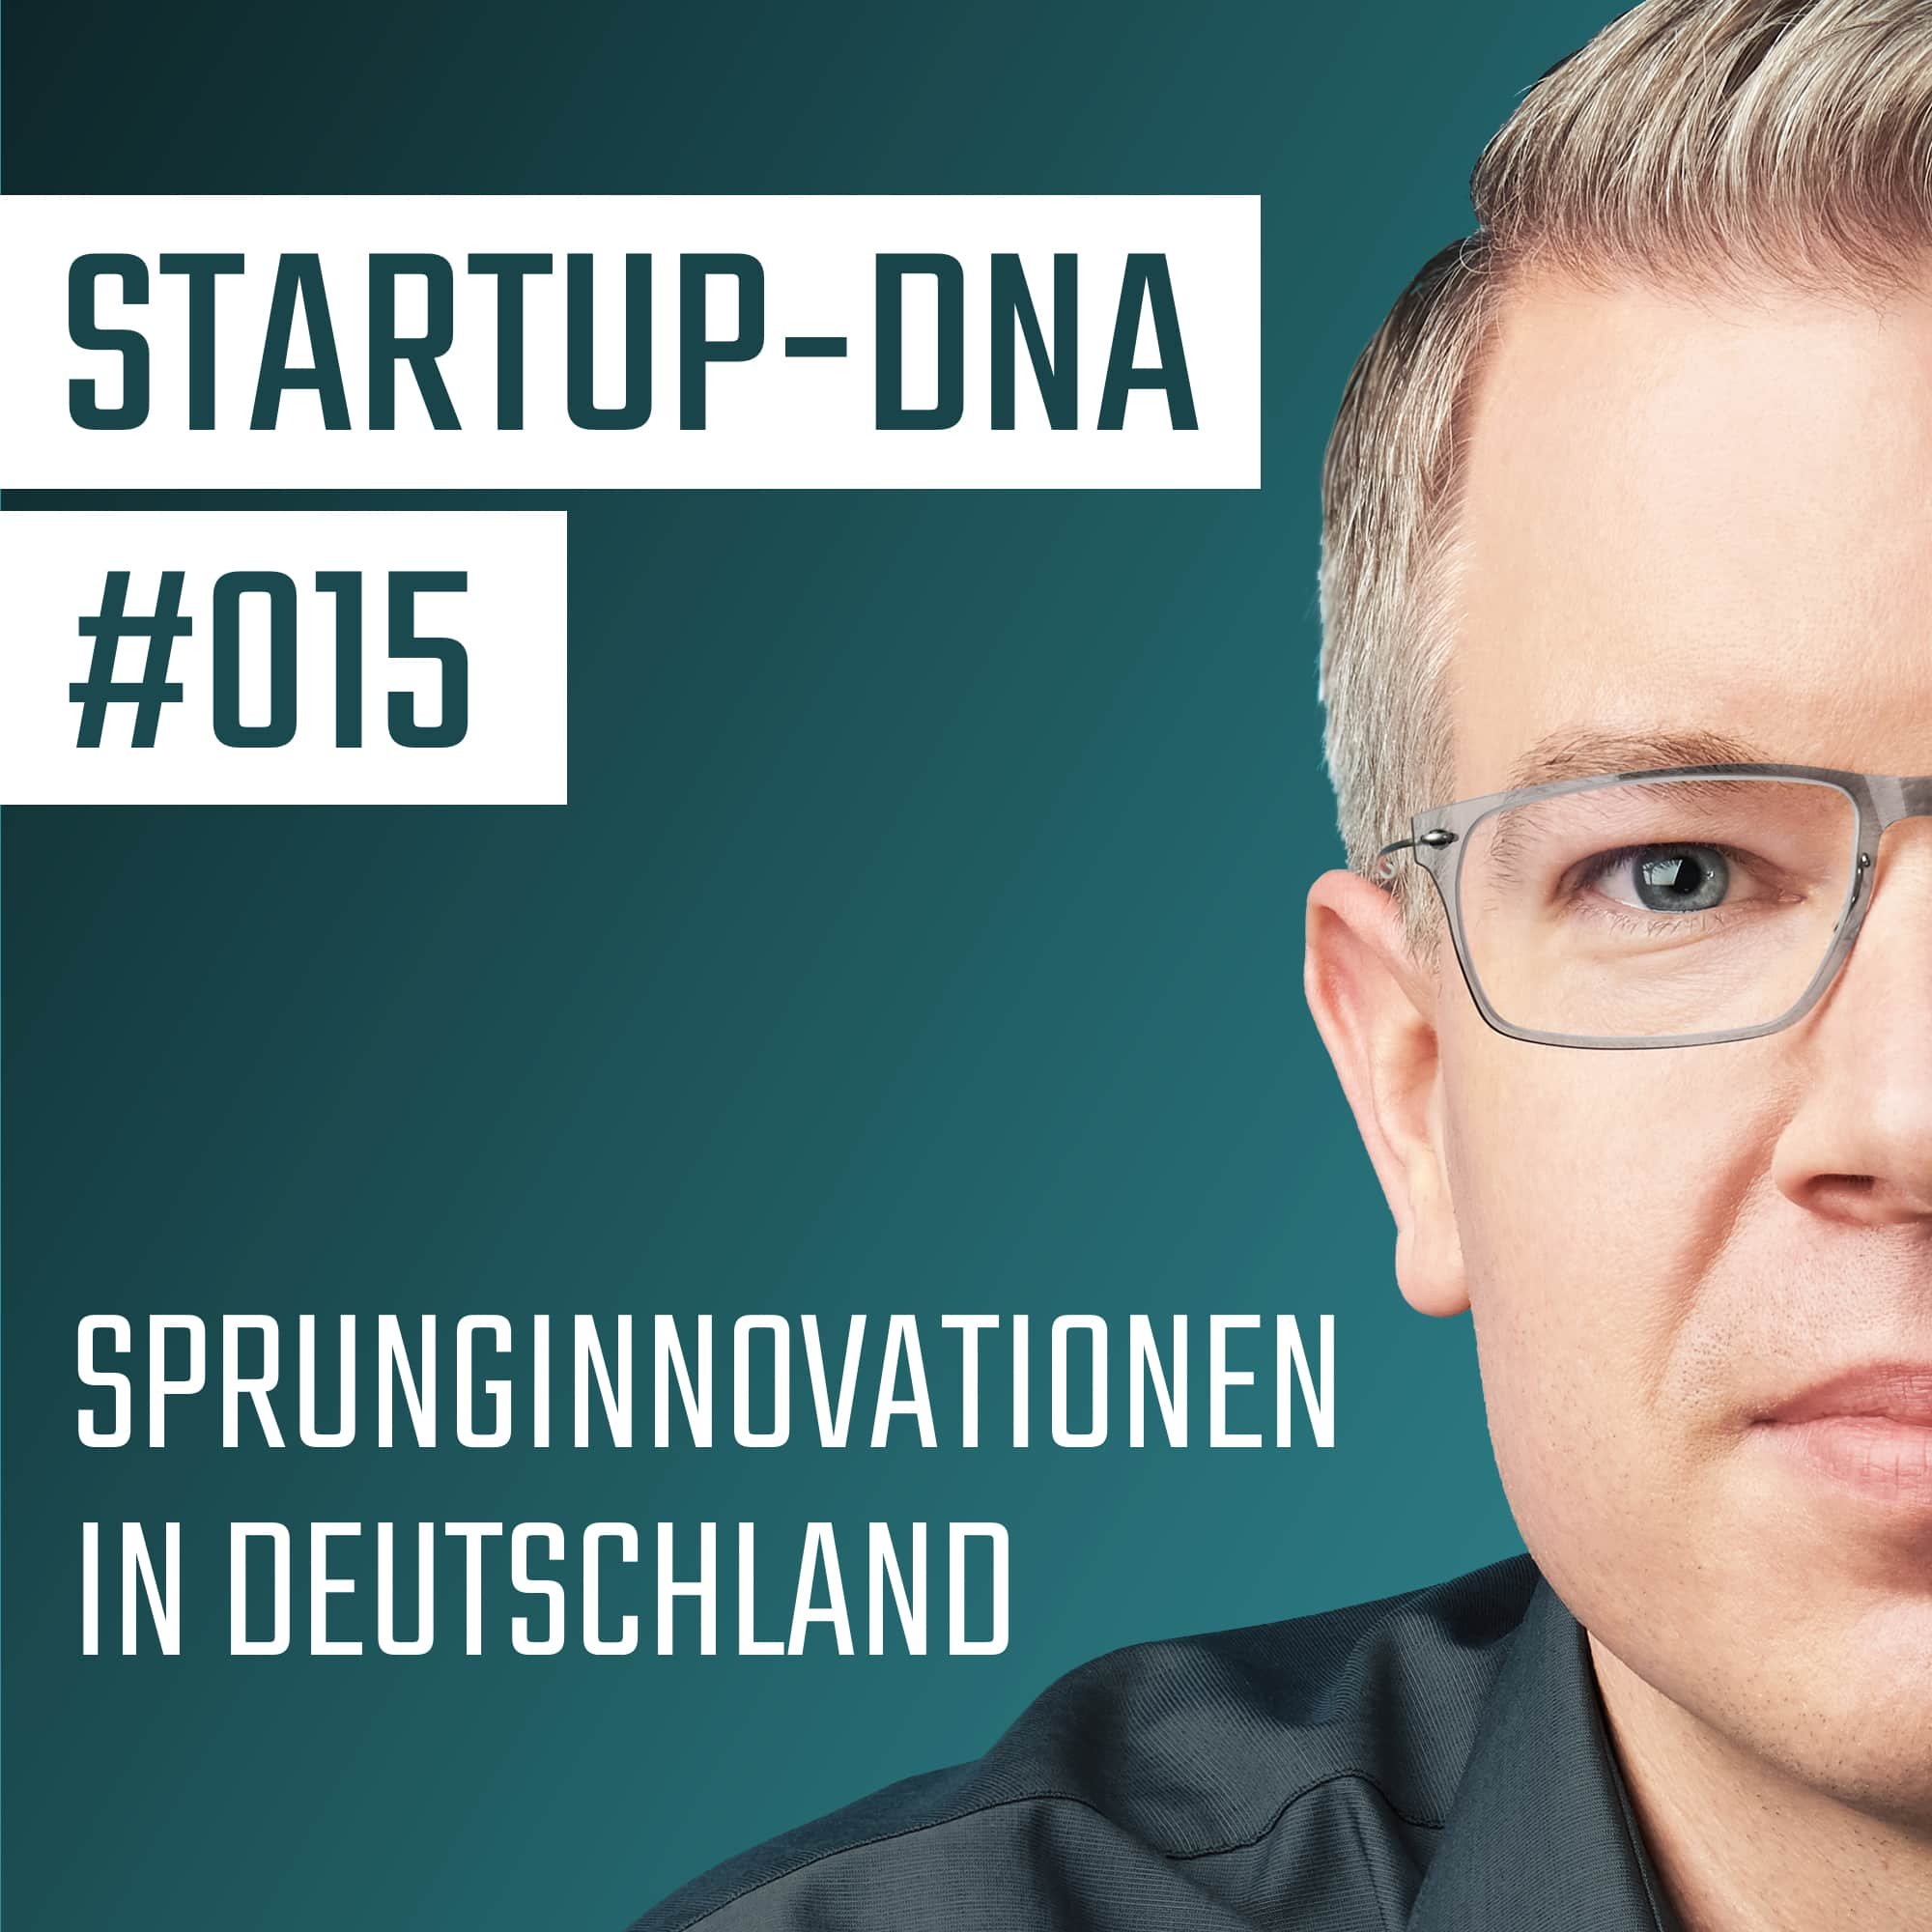 #015 Sprunginnovationen in Deutschland